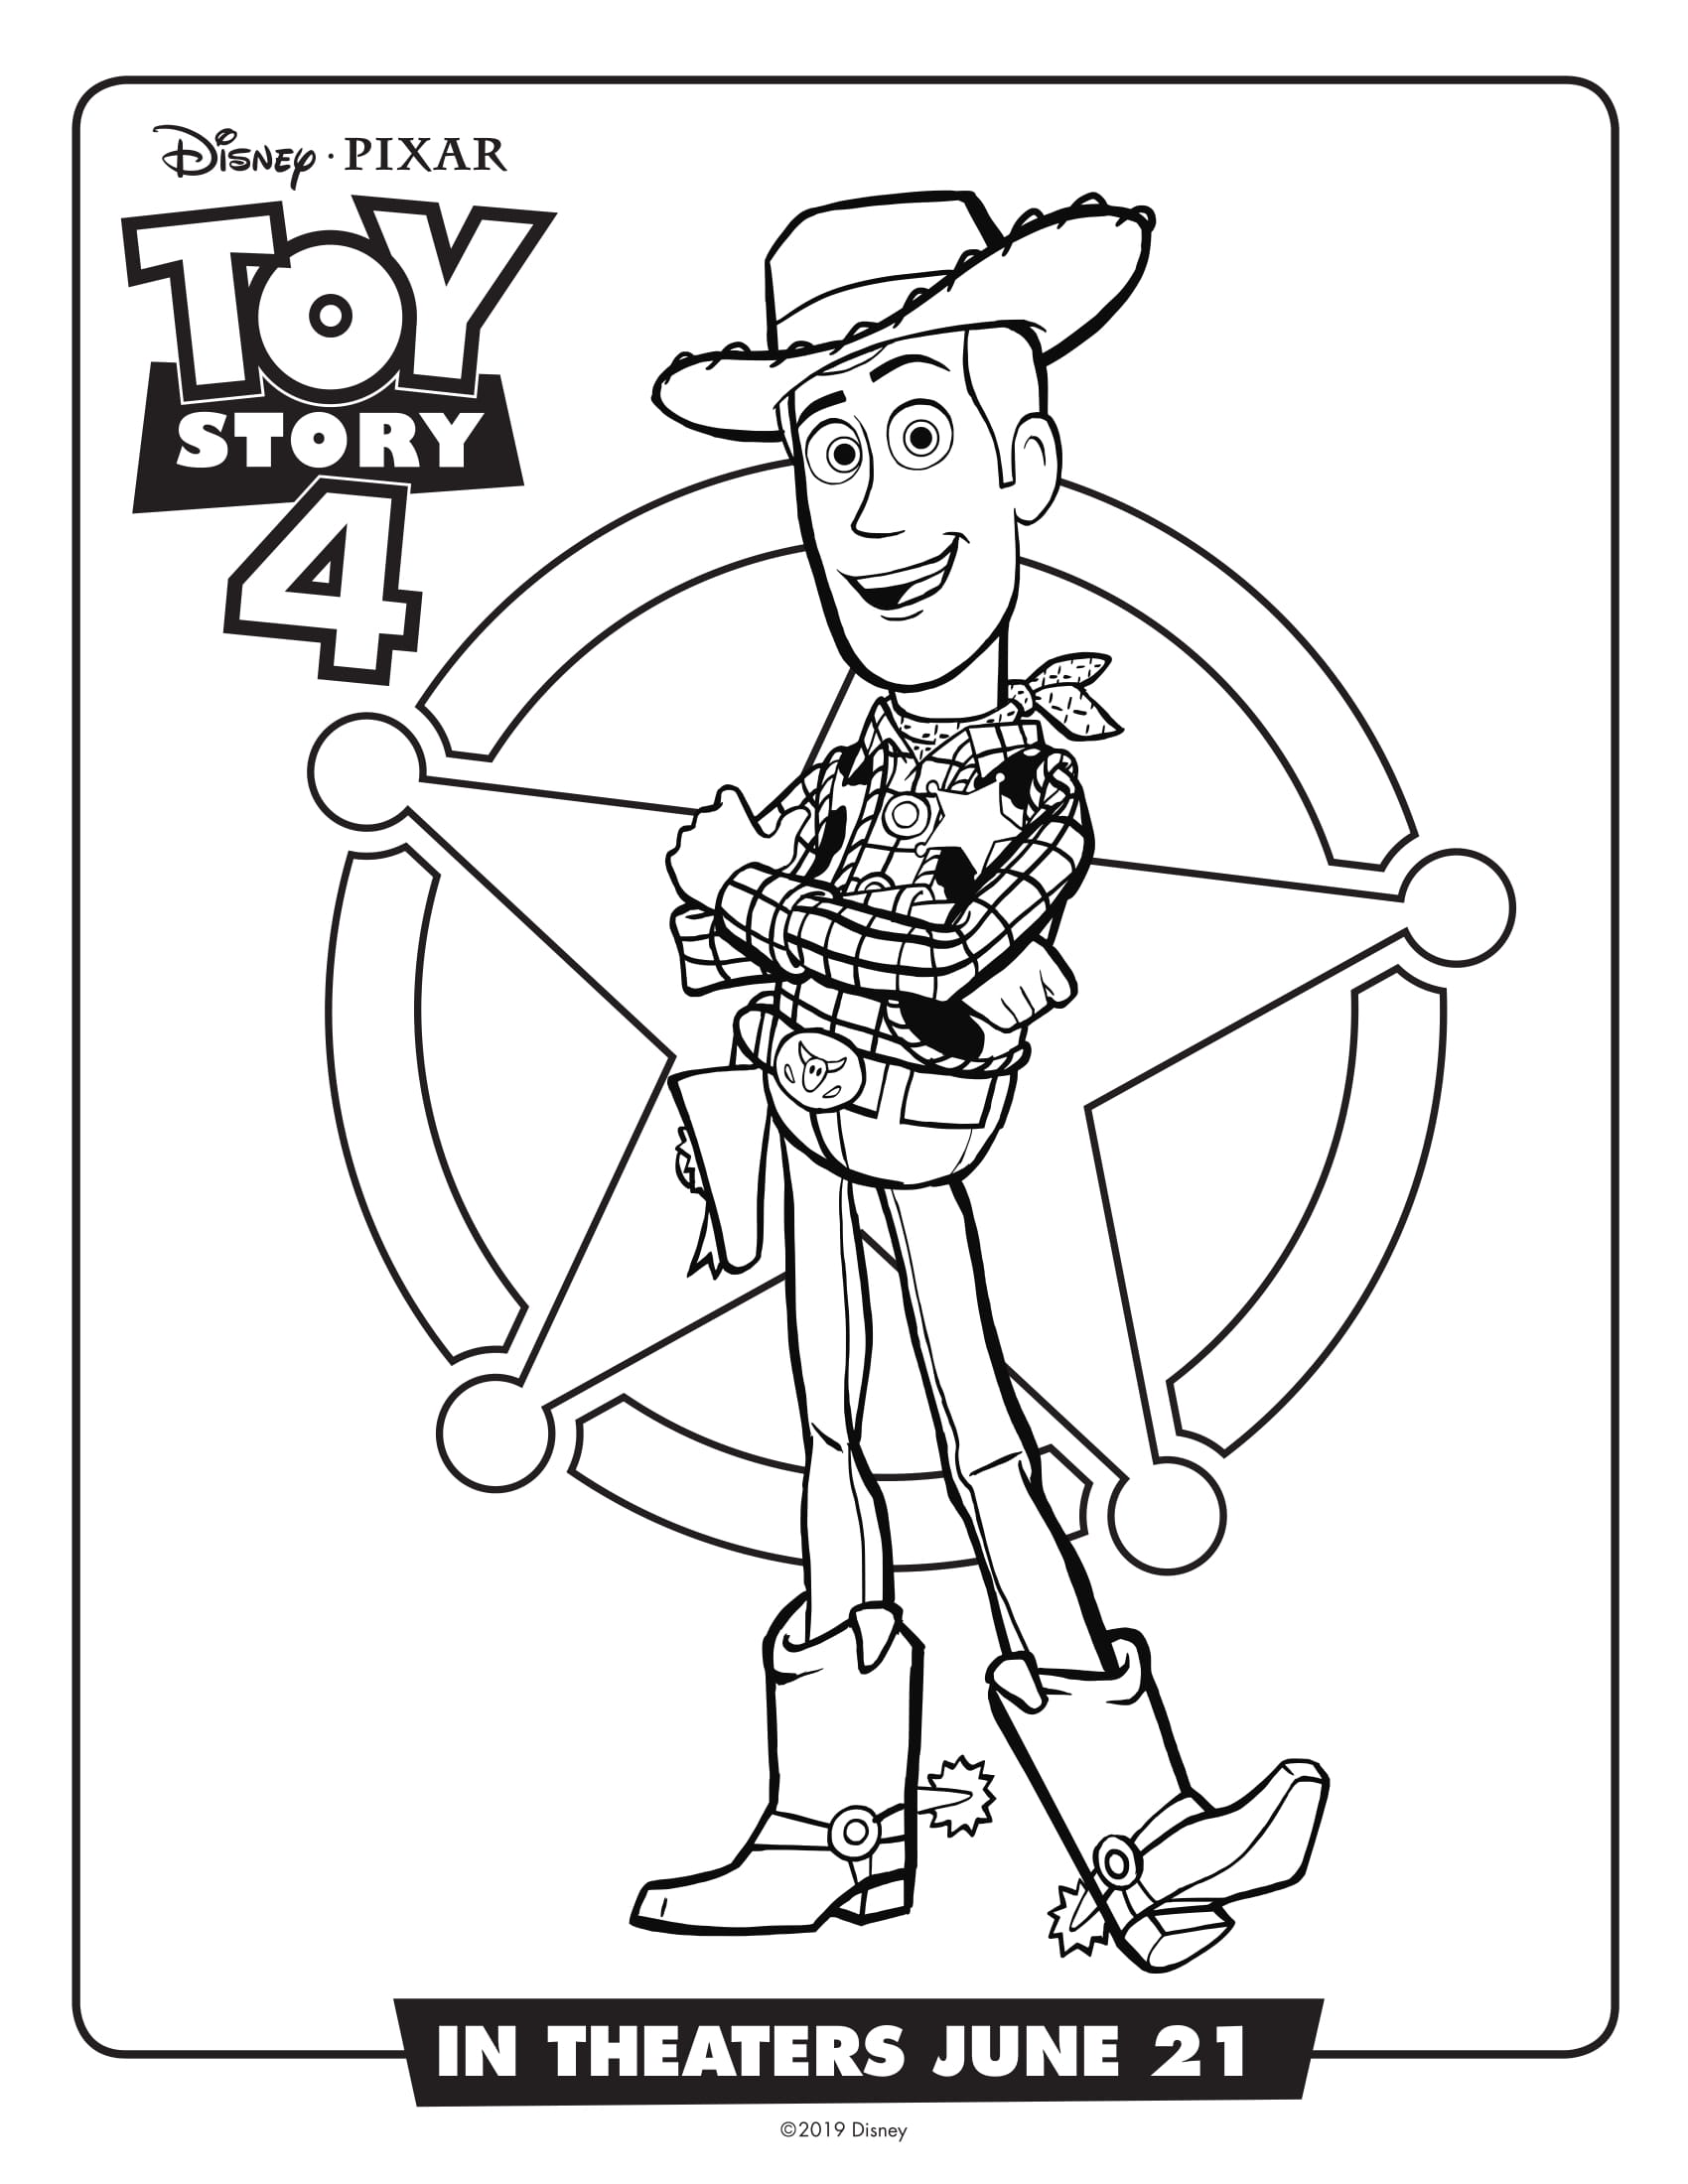 Toy Story 4 Coloring Pages - Best Coloring Pages For Kids